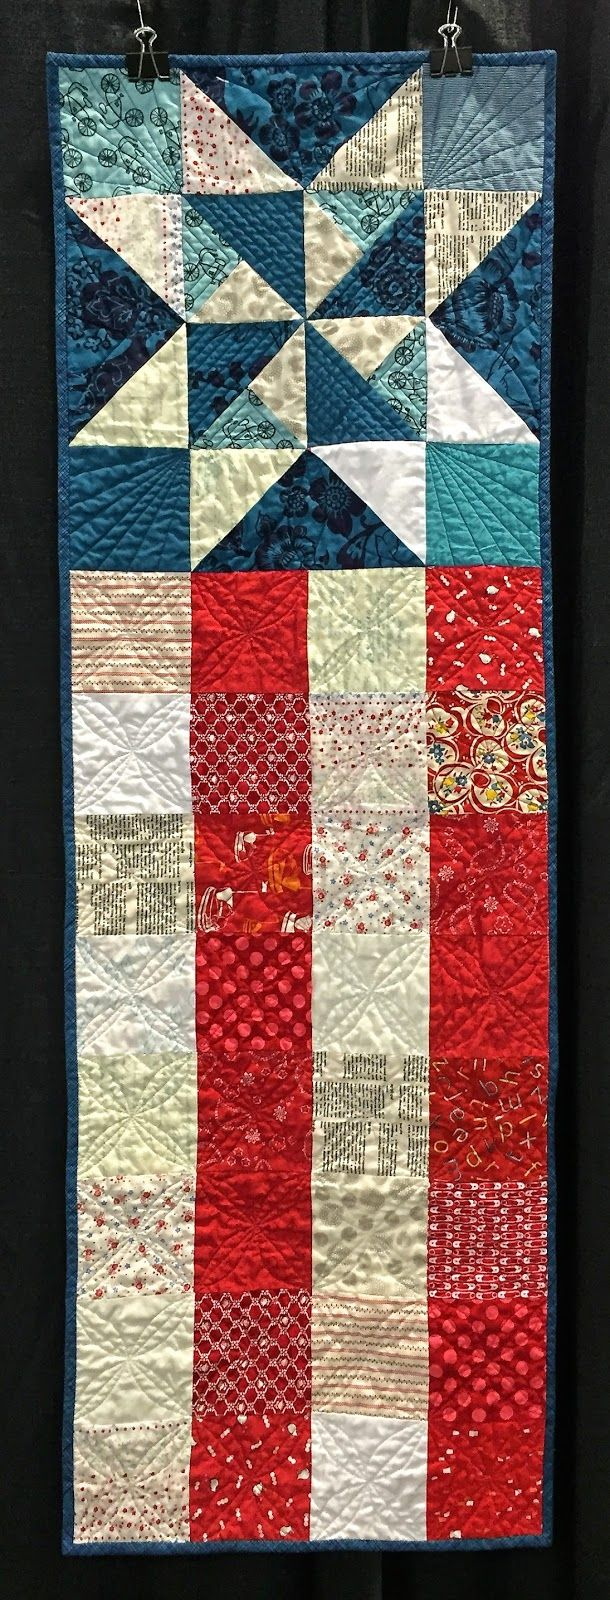 Patriotic star quilt banner. Oklahoma City Winter Quilt Show 2015. OKC Modern Quilters' Guild.